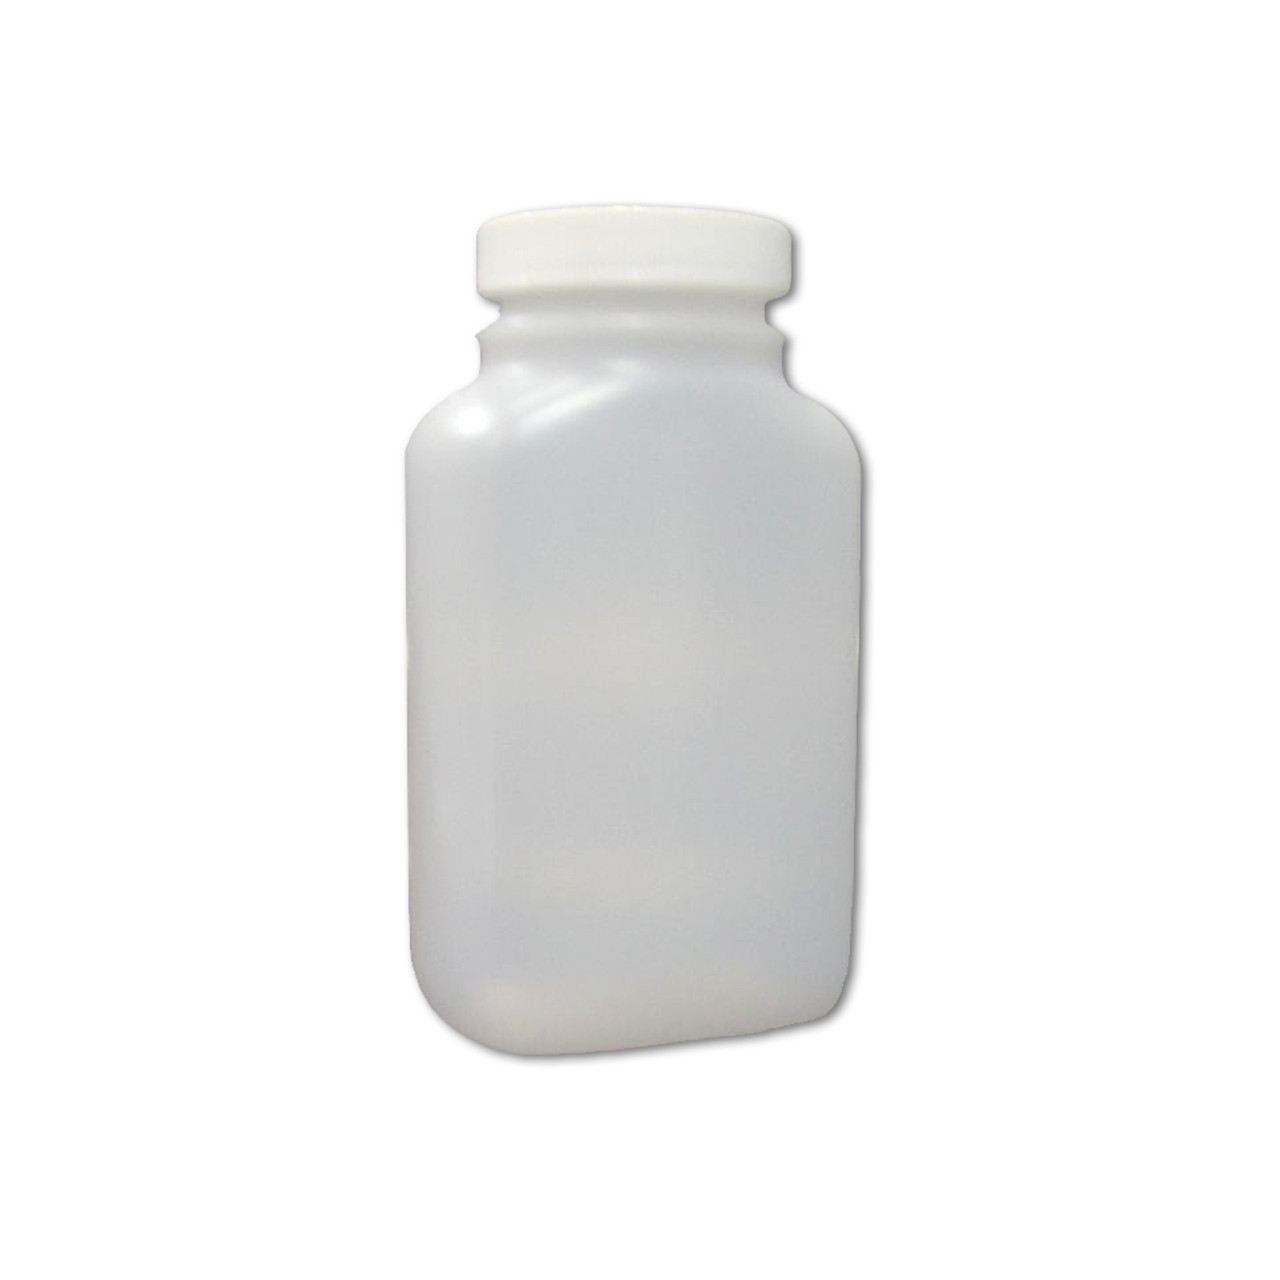 Certified Clean 8oz HDPE S&le Bottle Preserved 1mL Sulfuric Acid case/24  sc 1 st  CP Lab Safety & Certified Clean 8oz HDPE Sample Bottle Preserved 1mL Sulfuric ...